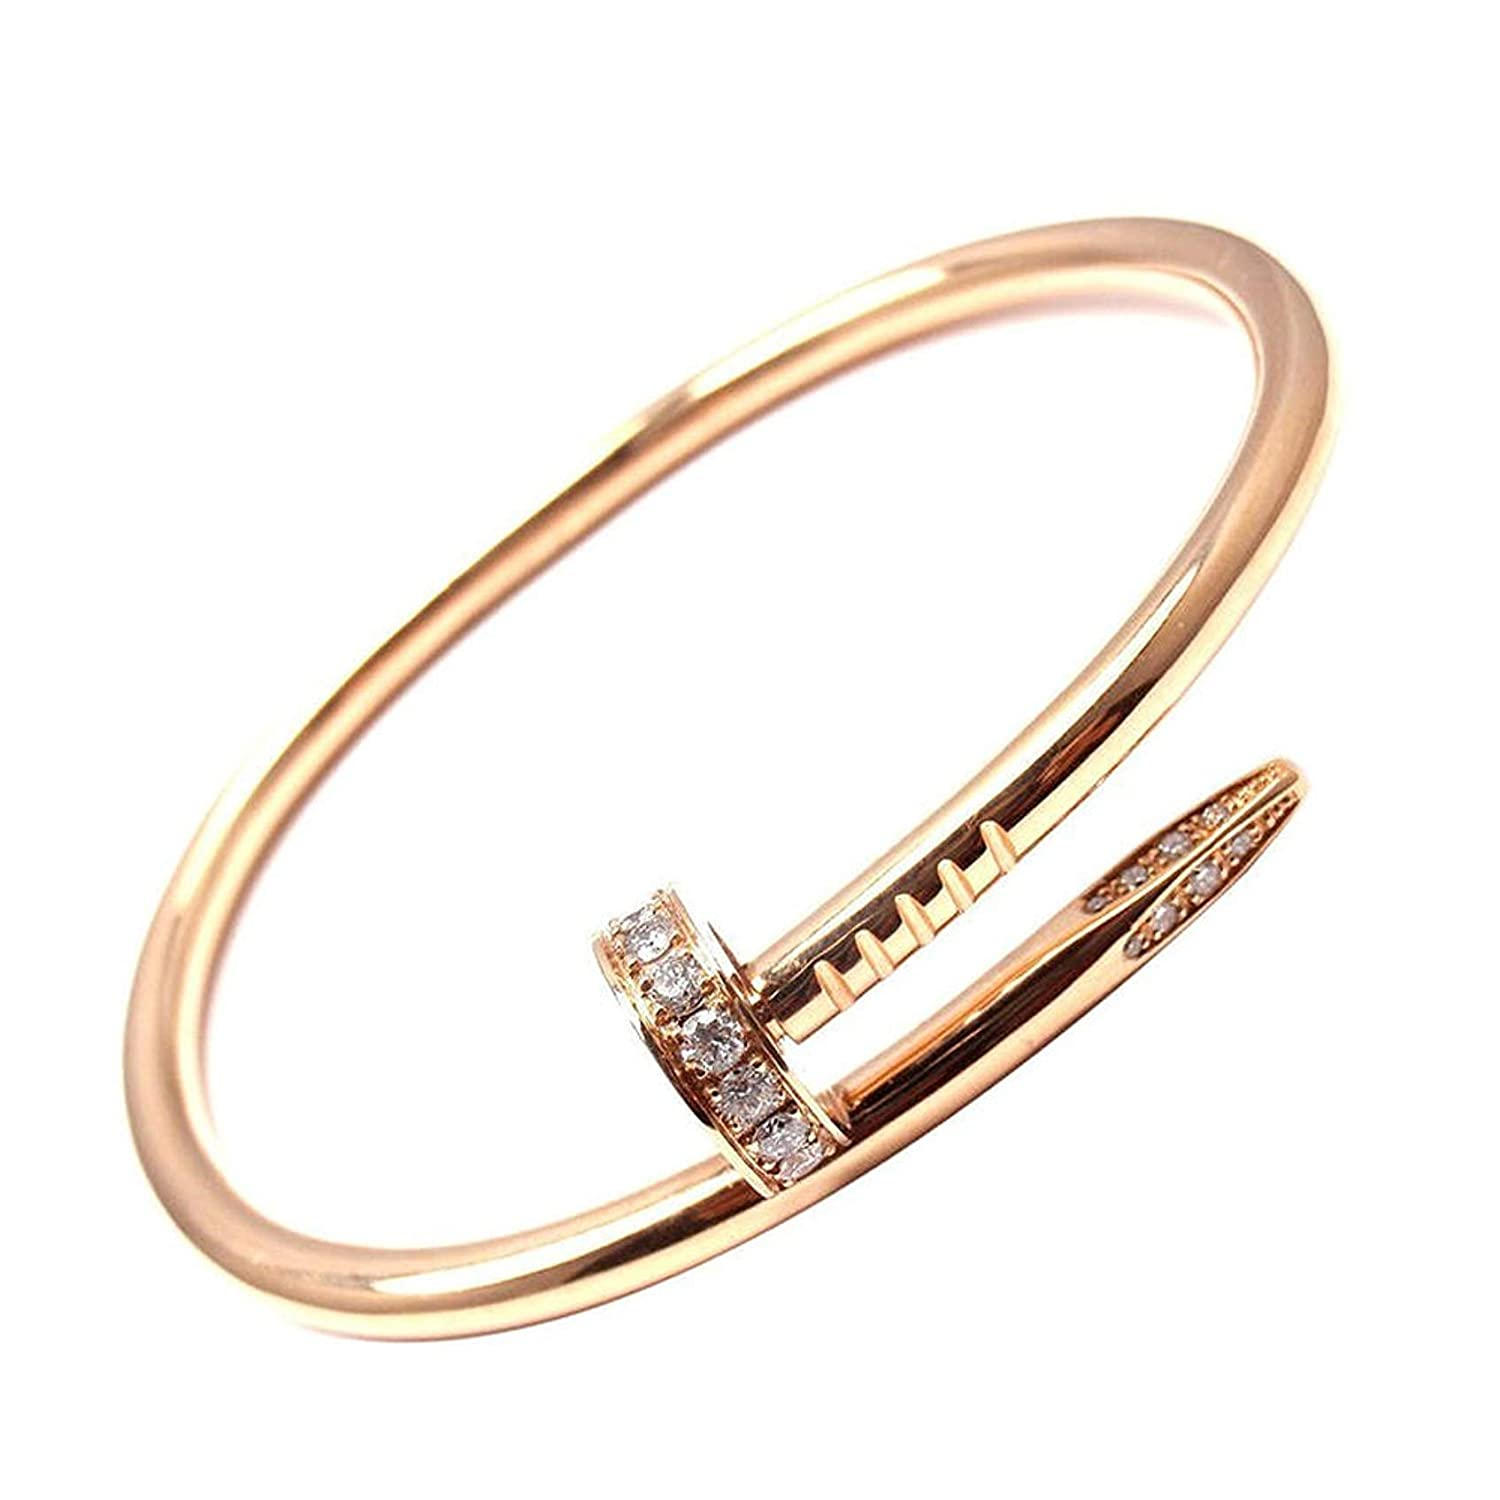 L& H Jewelry - Women's Gold Color Stainless Steel Nail Love Bangle Bracelet with CZ Inlaid Box Included LXLP B06XFJR7CB_US